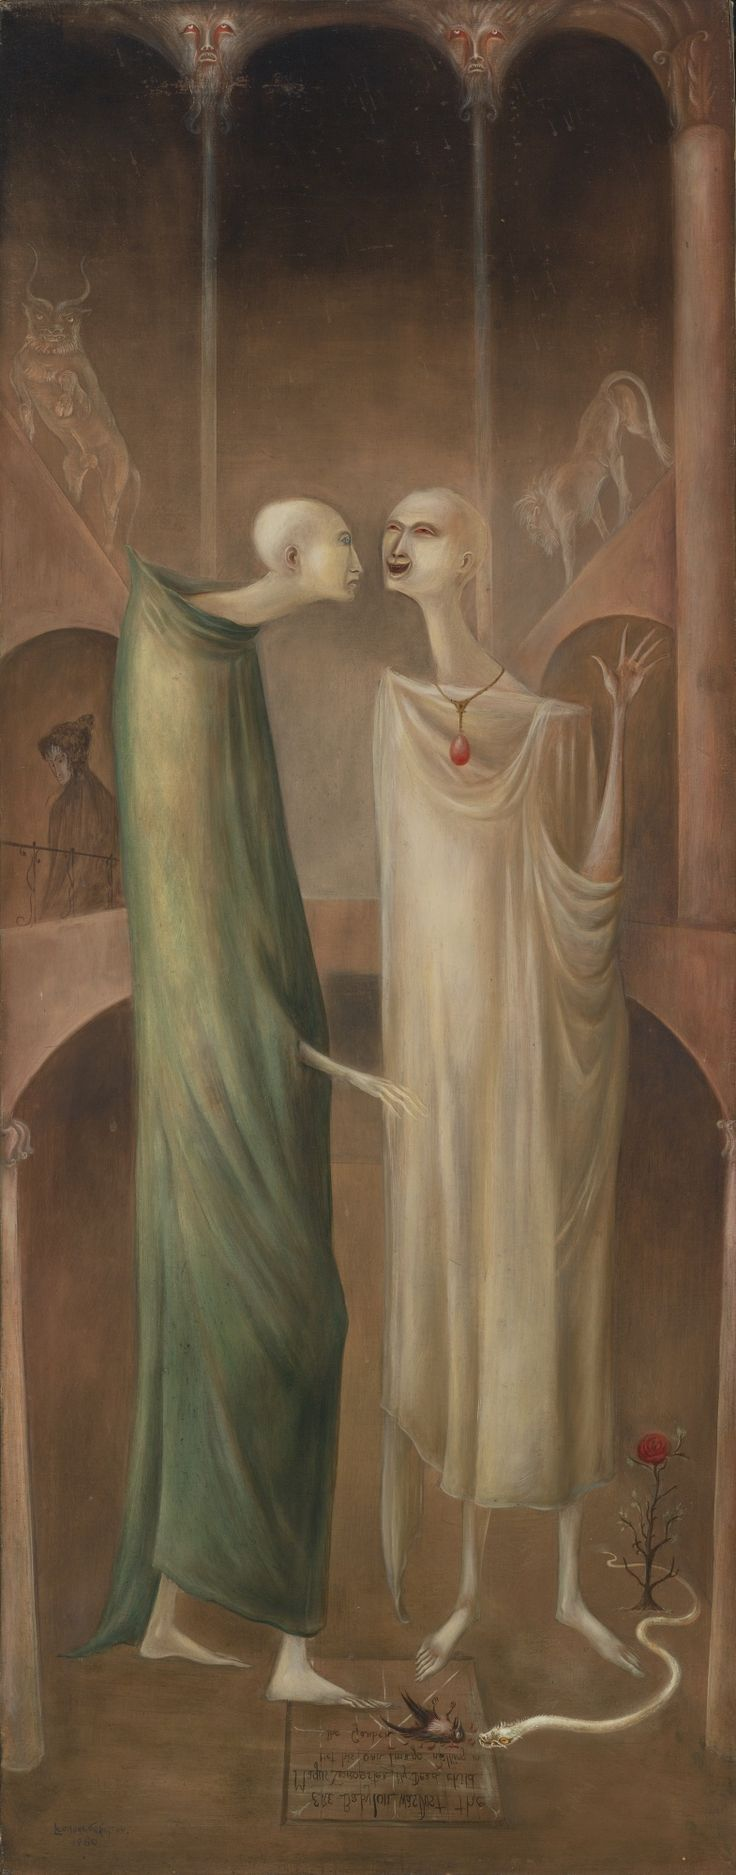 39 LEONORA CARRINGTON (1917-2011) THE MAGUS ZOROASTER MEETING HIS OWN IMAGE IN THE GARDEN (BROTHERS IN BABYLONE) signed and dated 1960 lower...